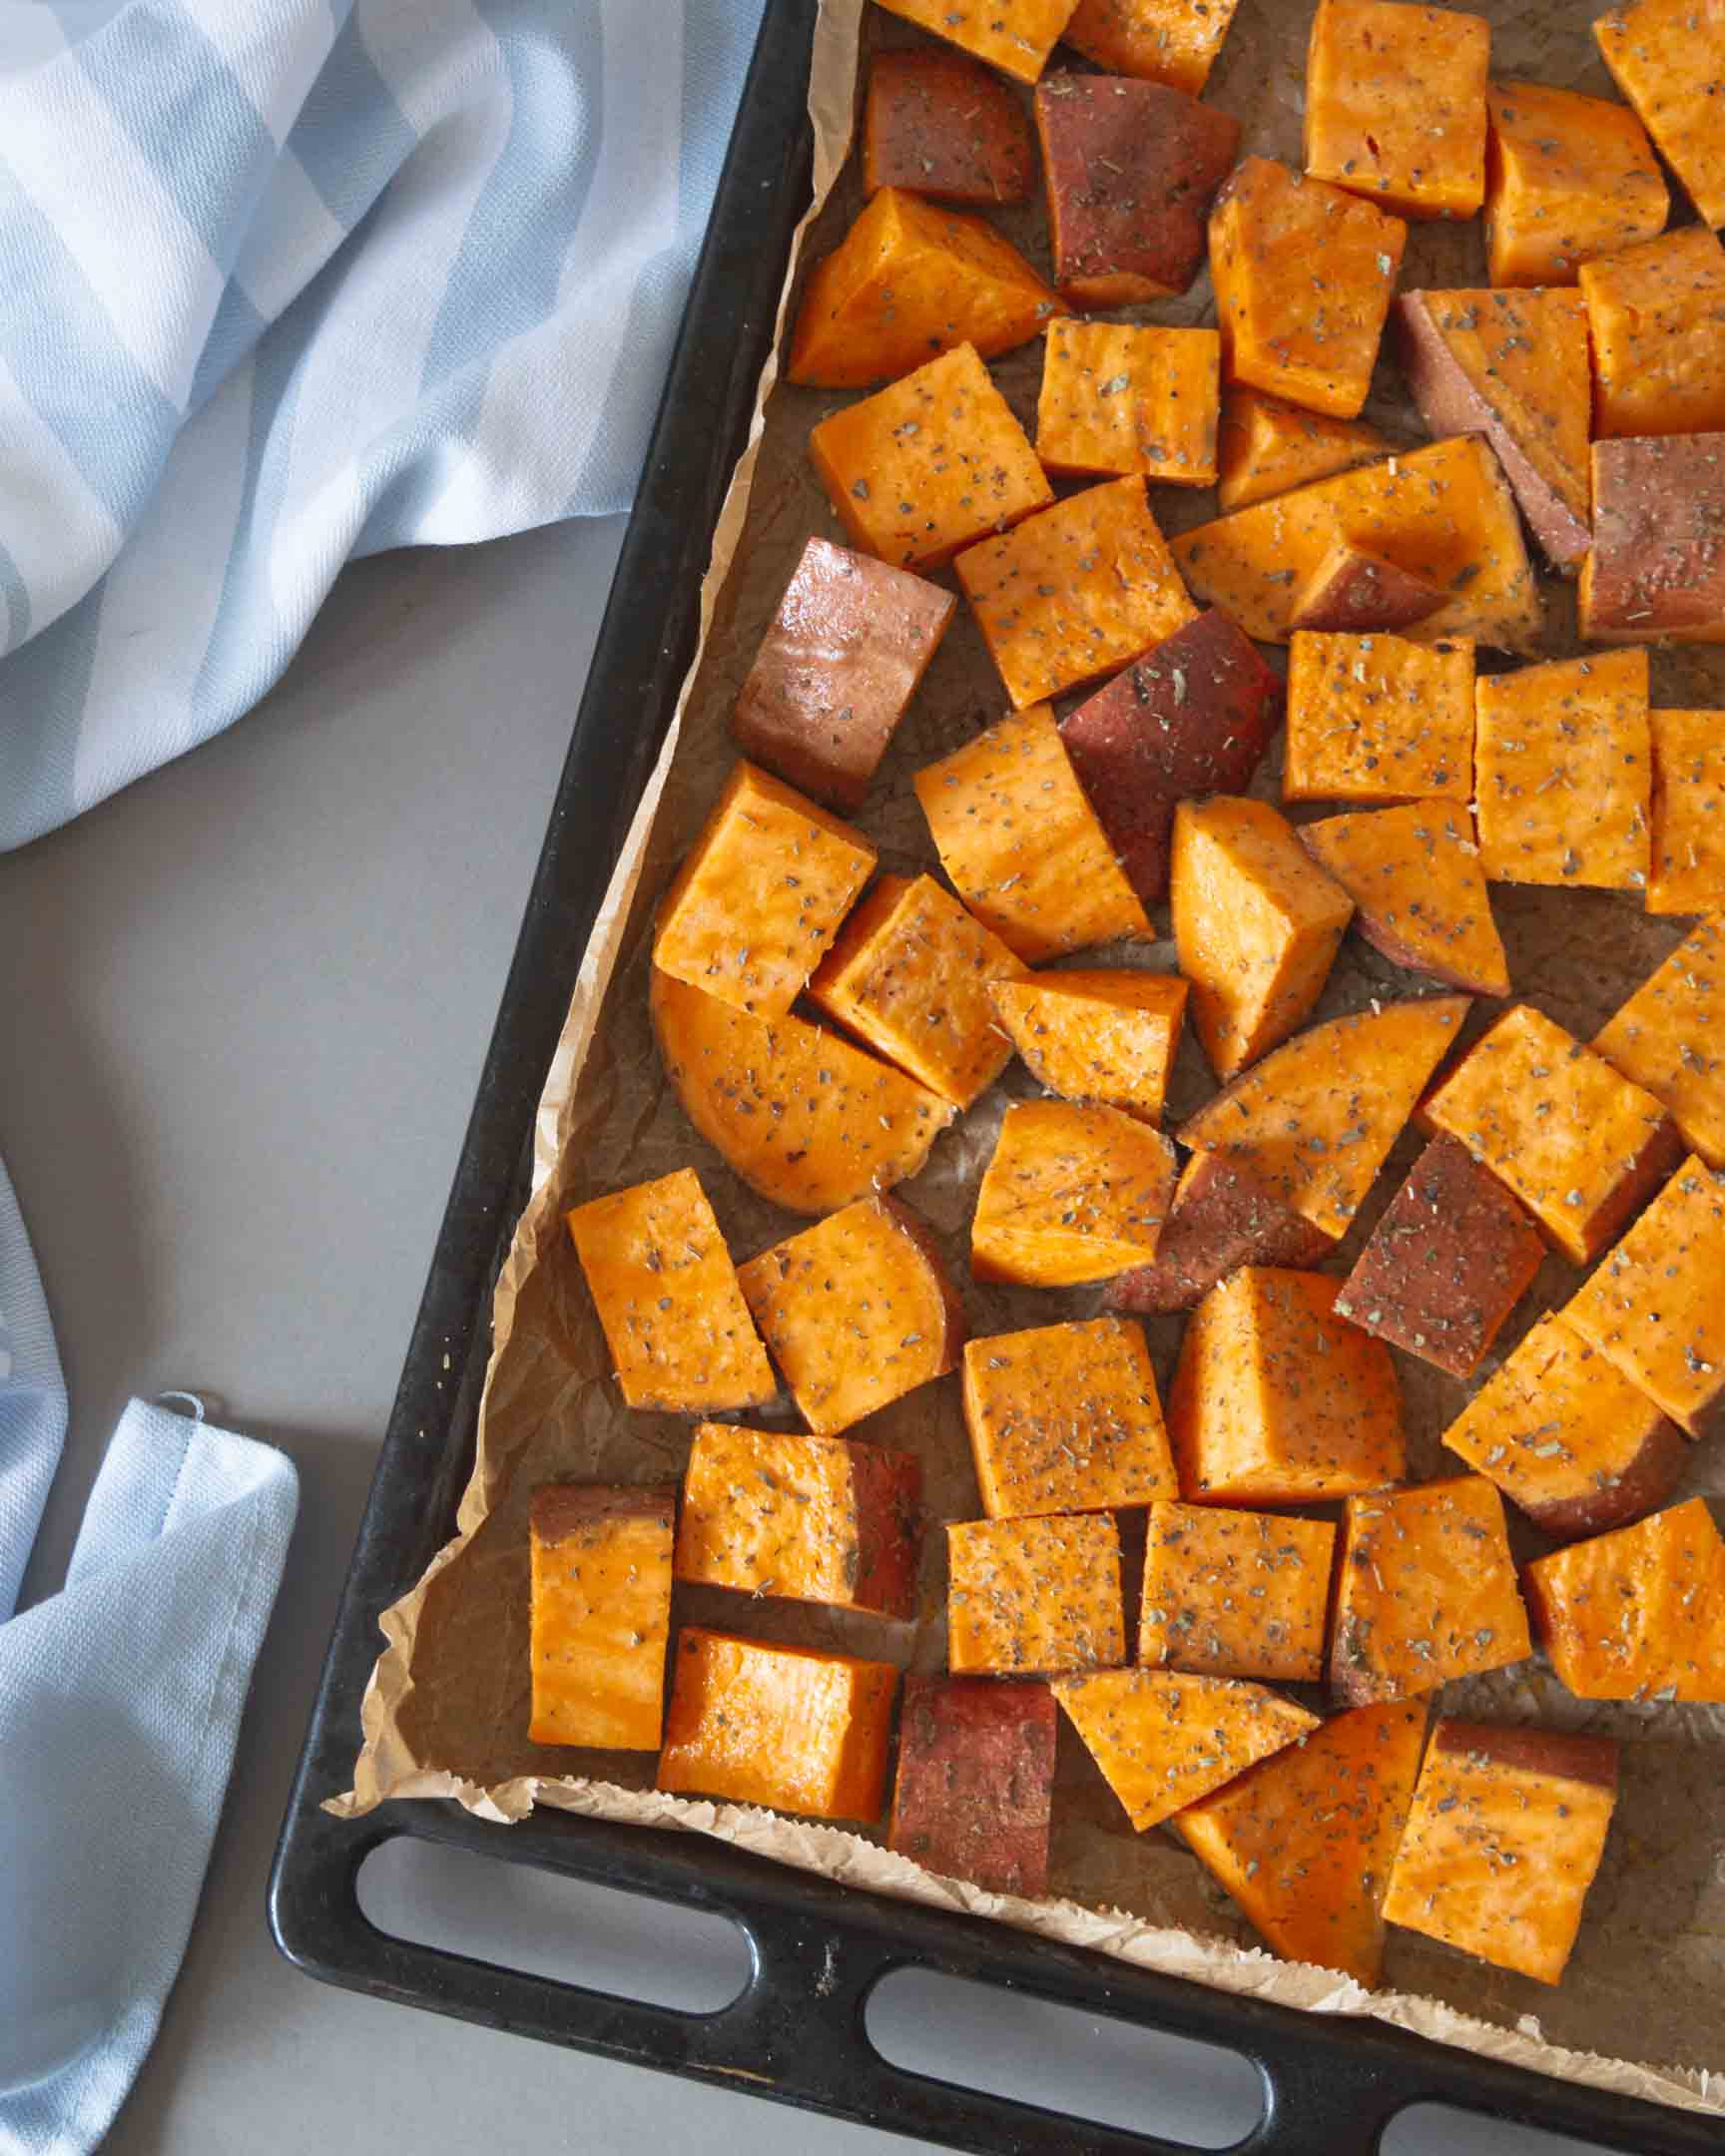 sweet potatoes on a baking tray, before roasting